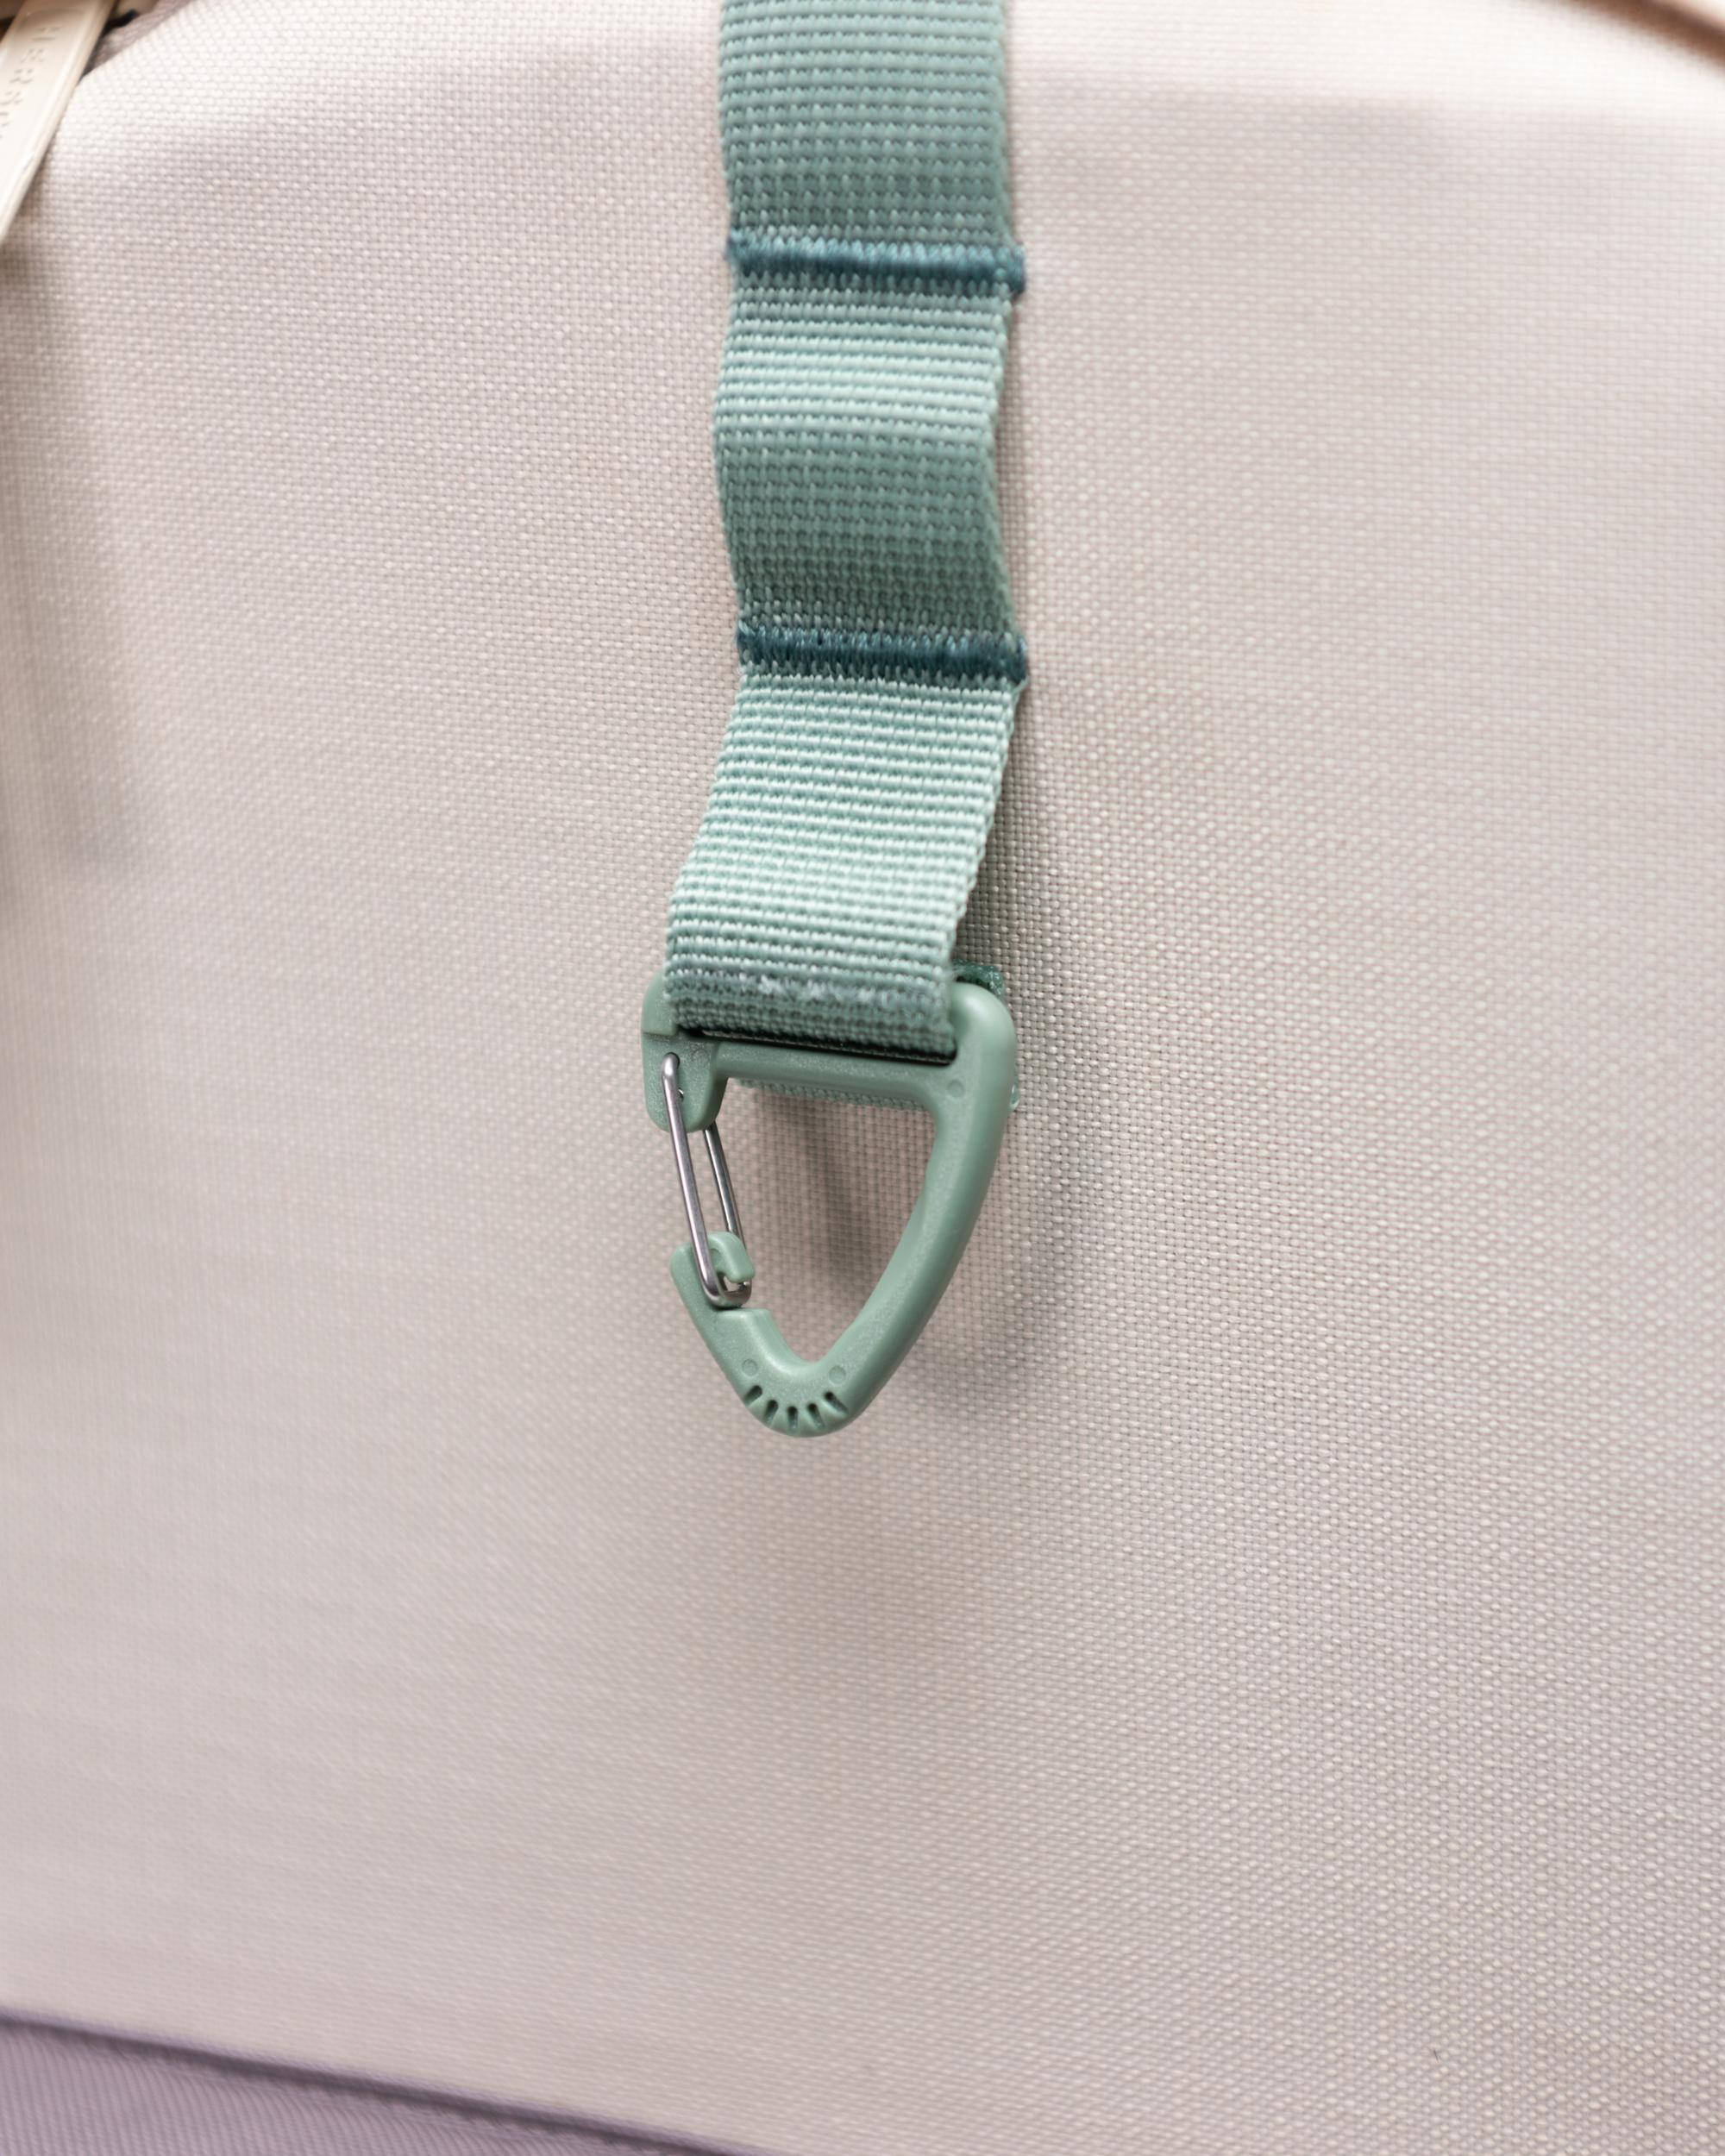 Top strap with triangle key clip